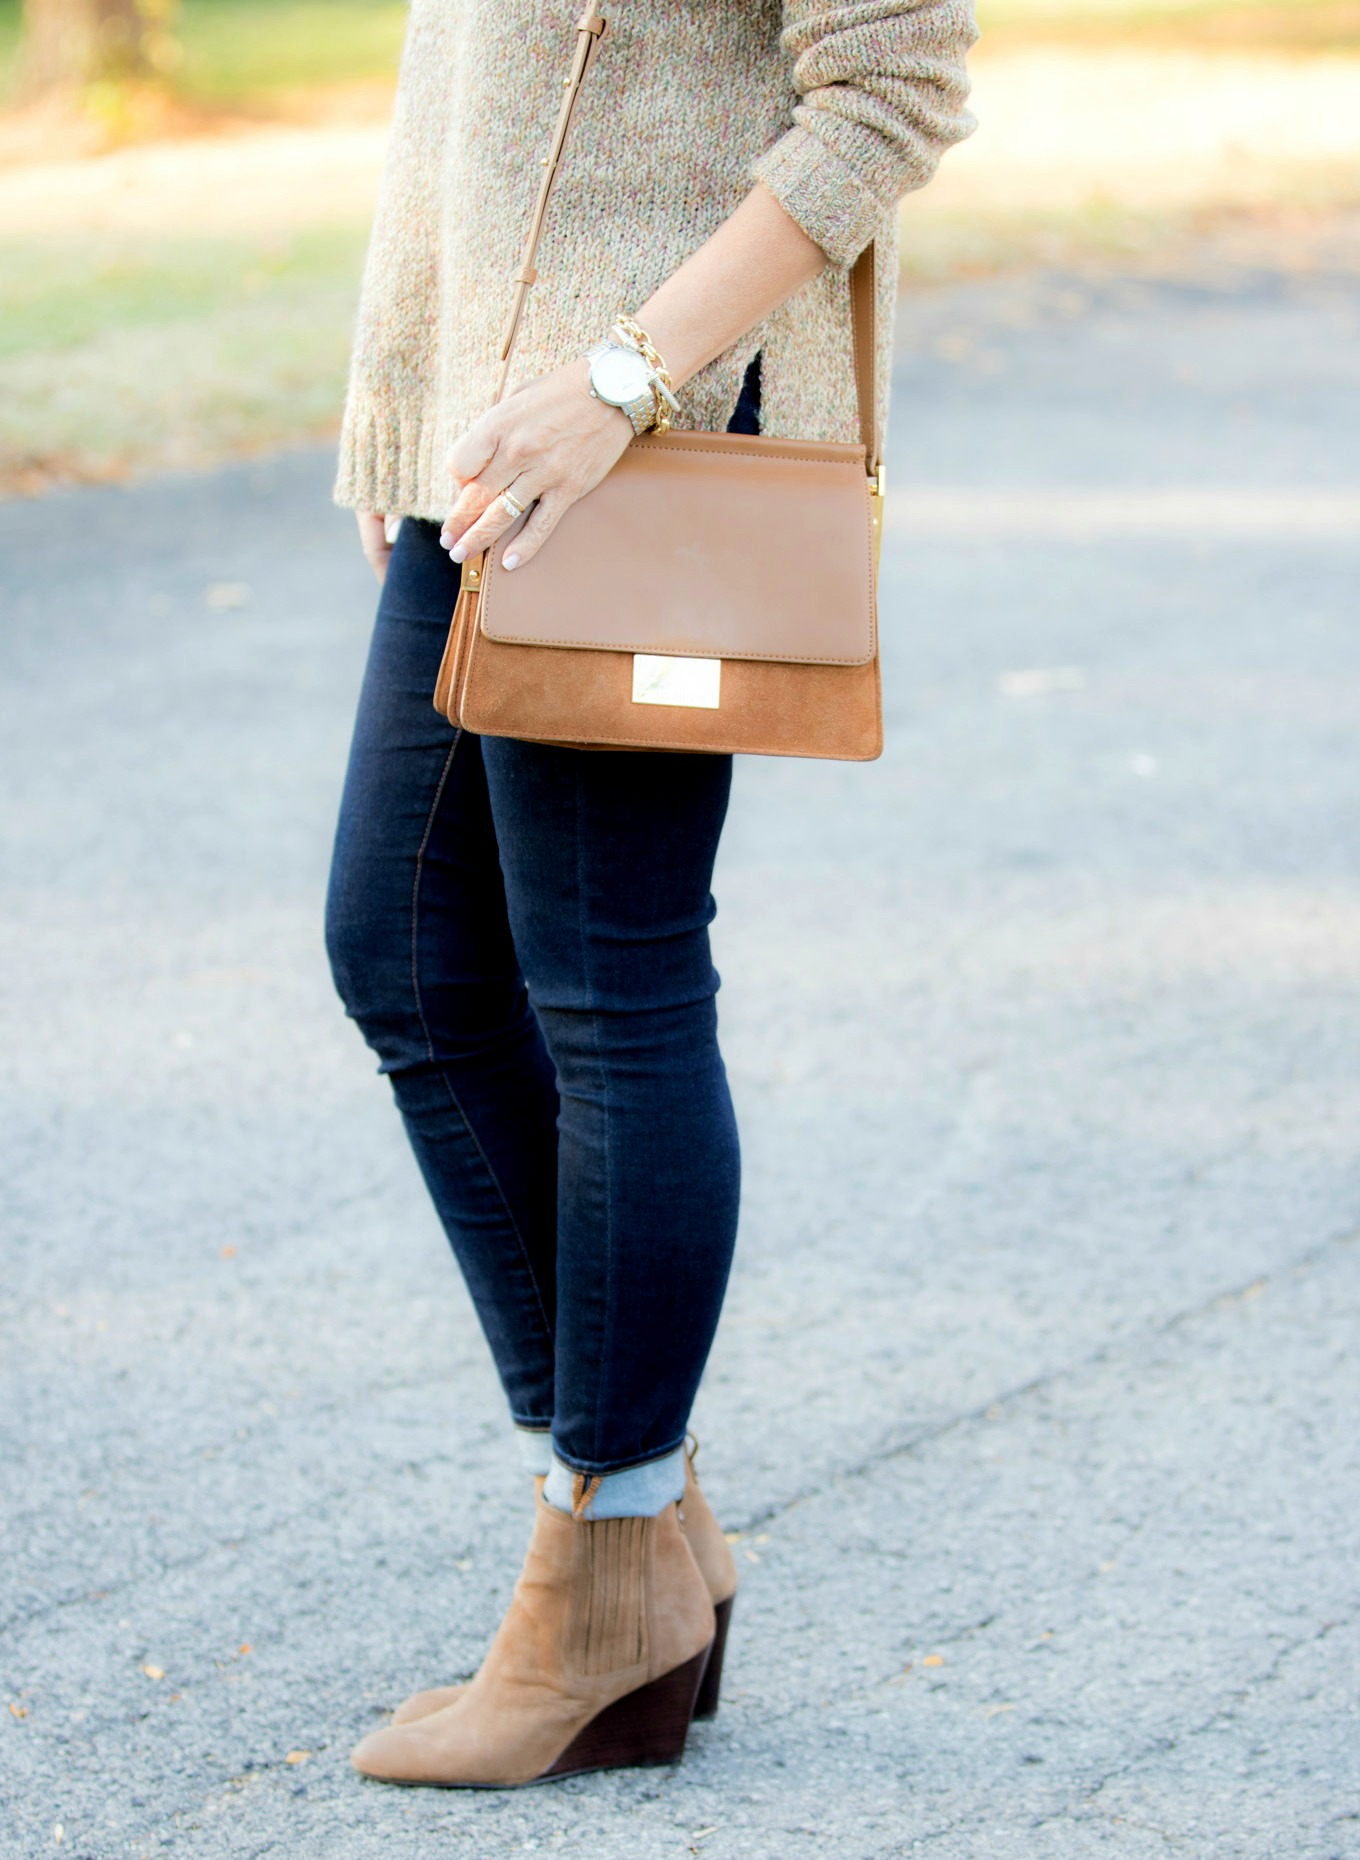 Fashion blogger Cyndi Spivey styling a casual fall outfit from Nordstrom for women over 40.